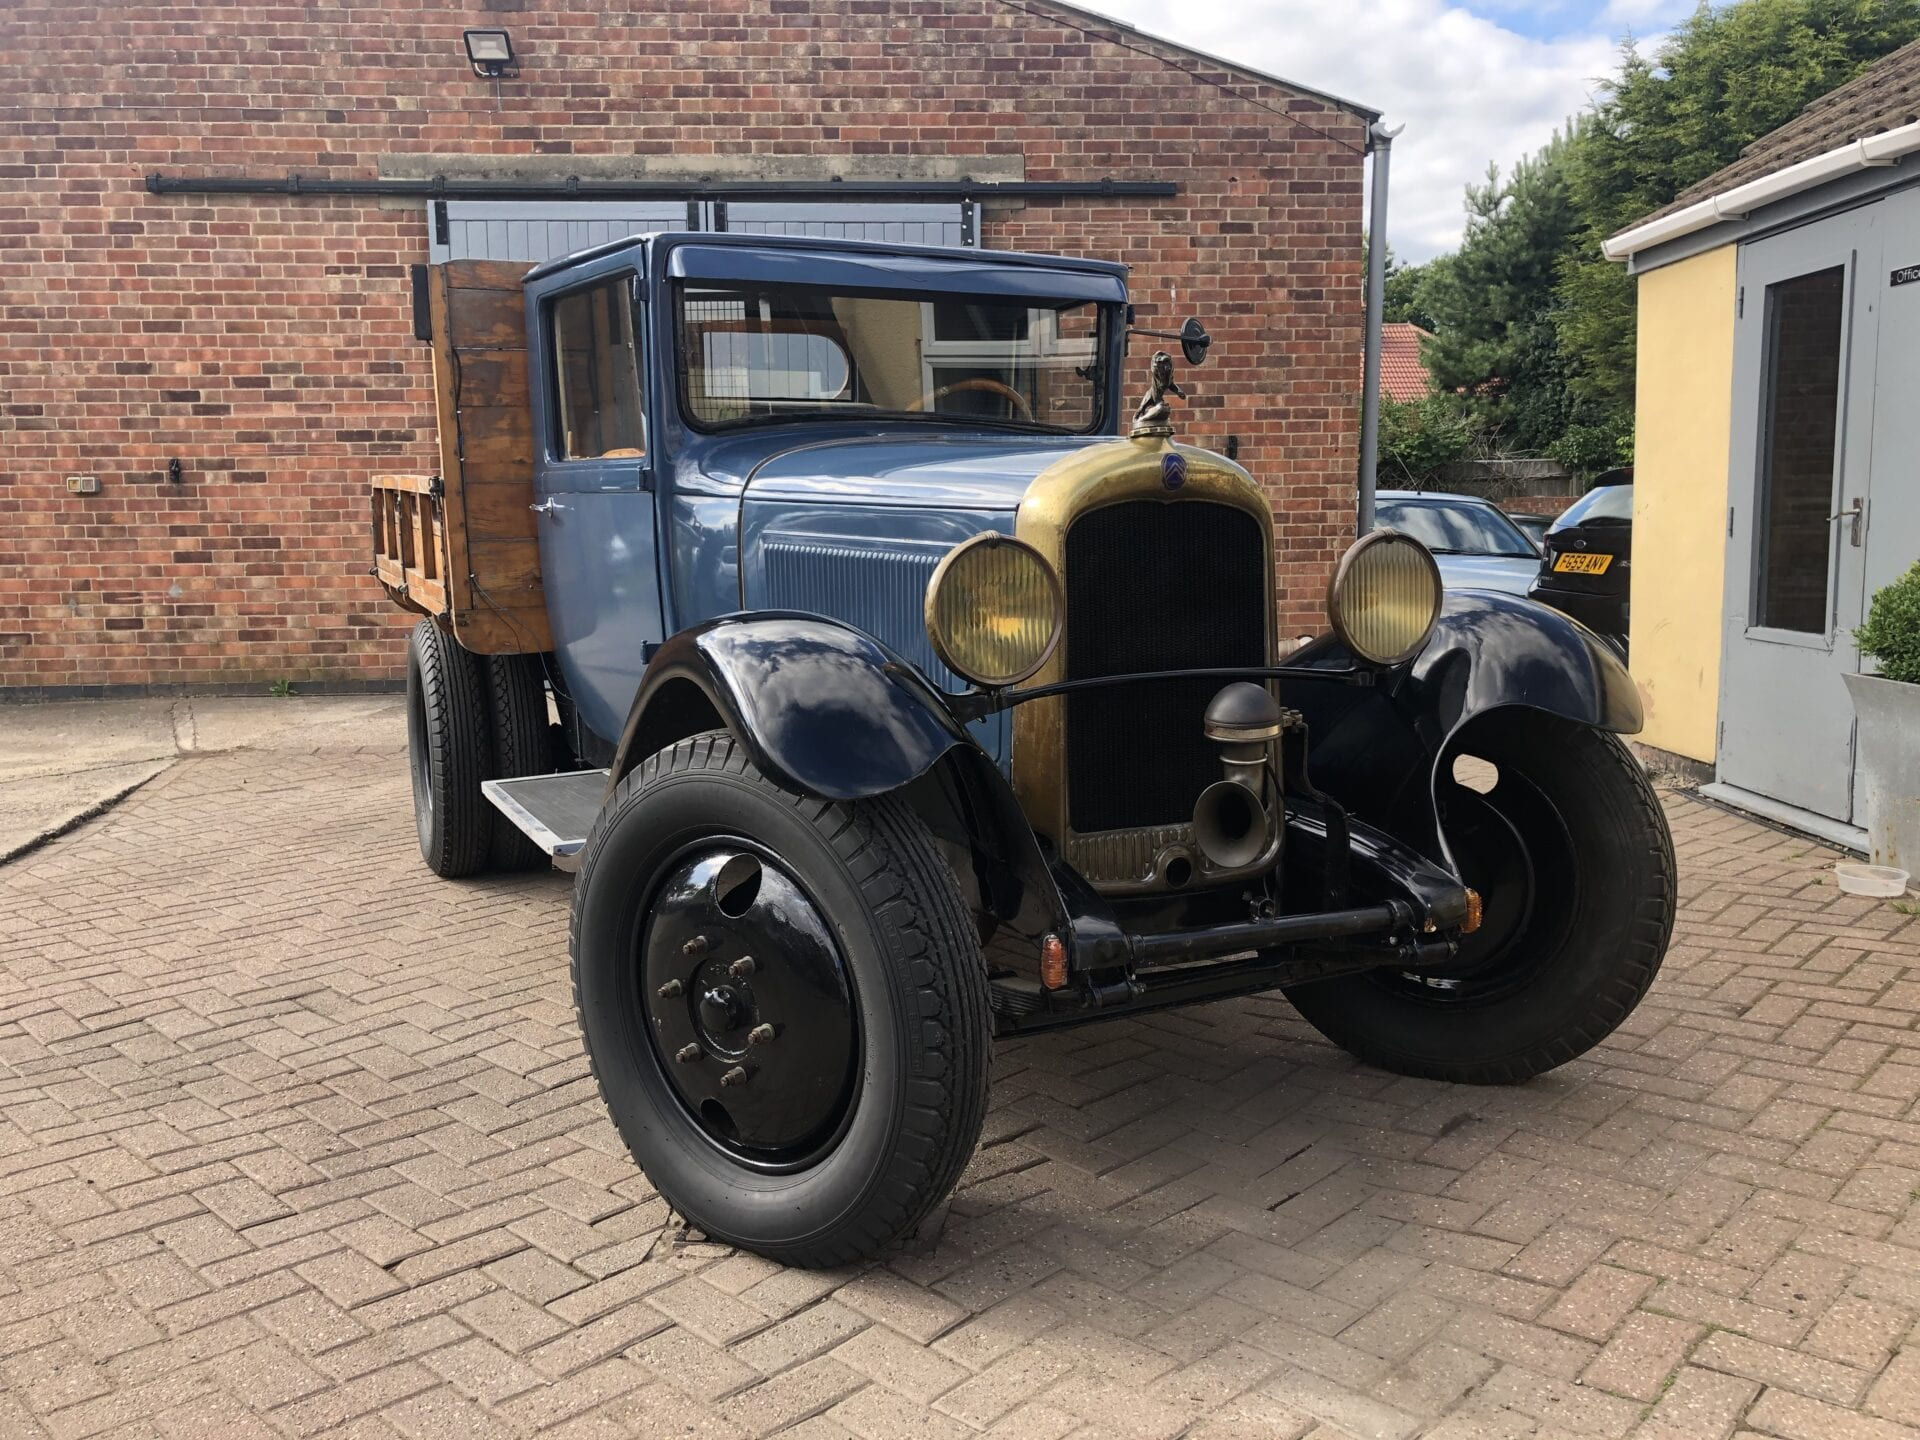 myCar UK - 1928 Citroen A C4 Pickup